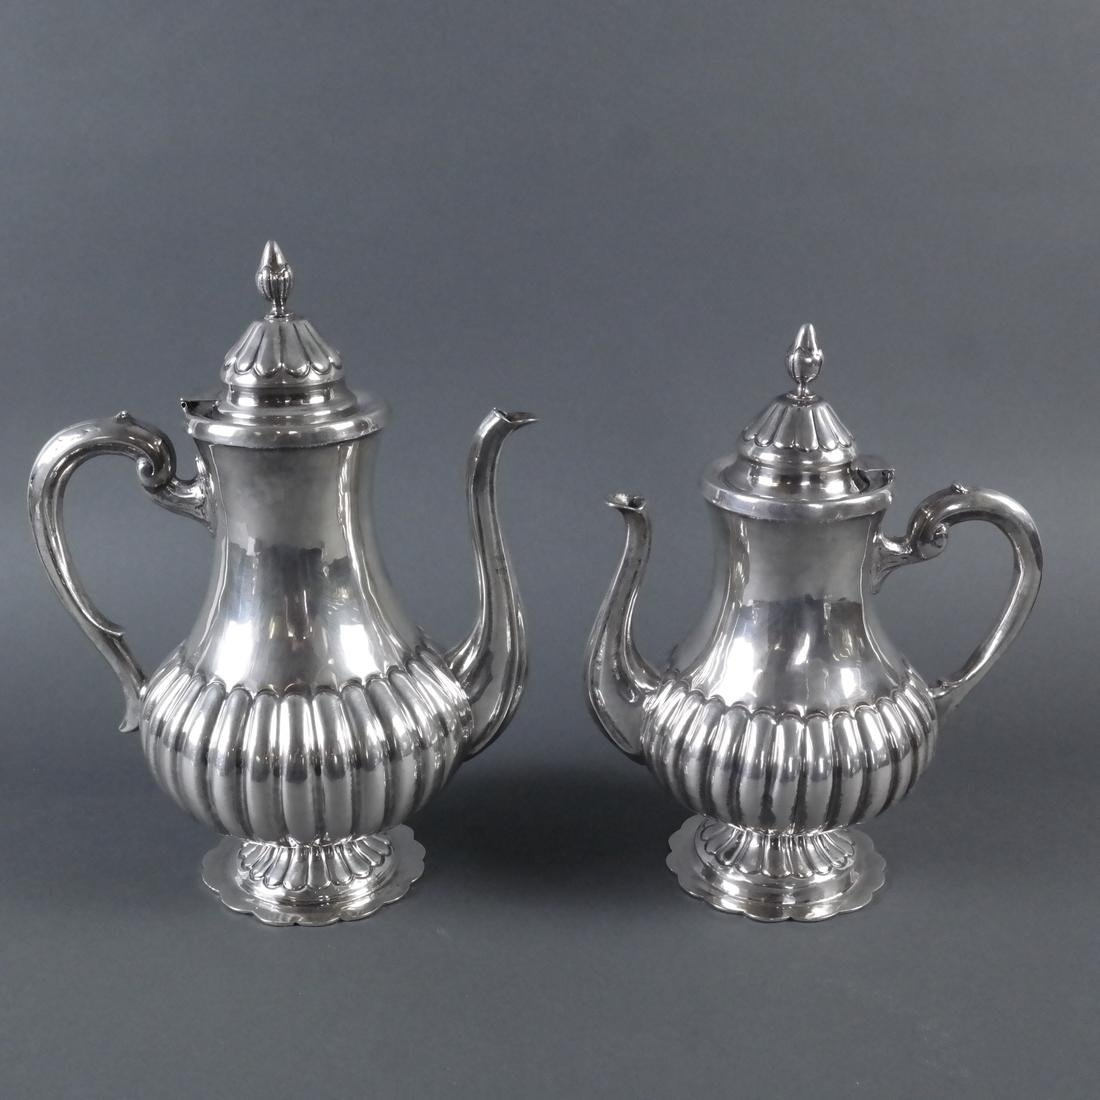 5-Piece .900 Ornate Silver Tea Service - 6